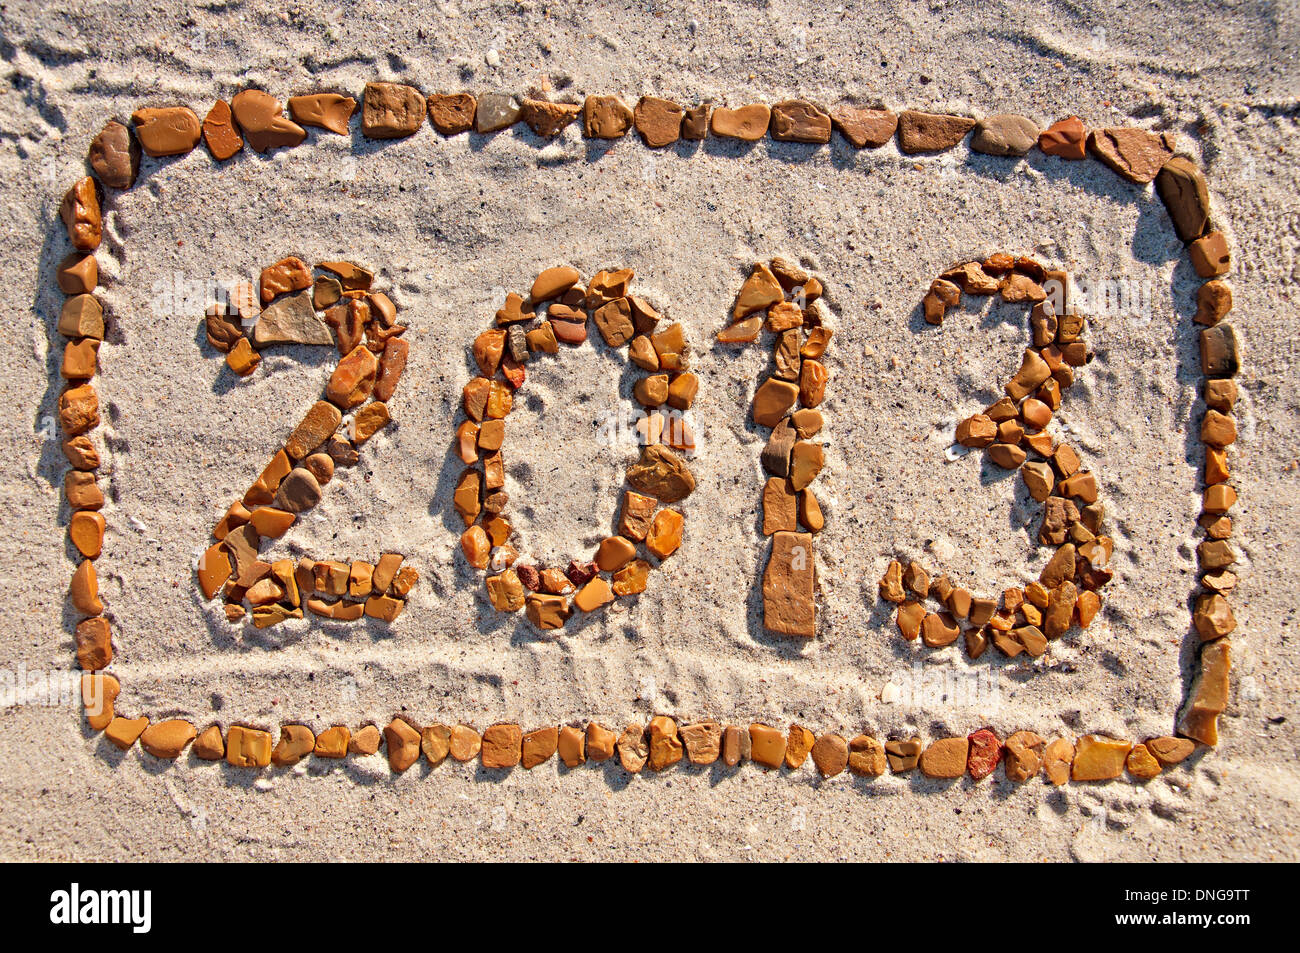 Digits 2013 - numbers in the frame, lined with pebbles on the sand. - Stock Image